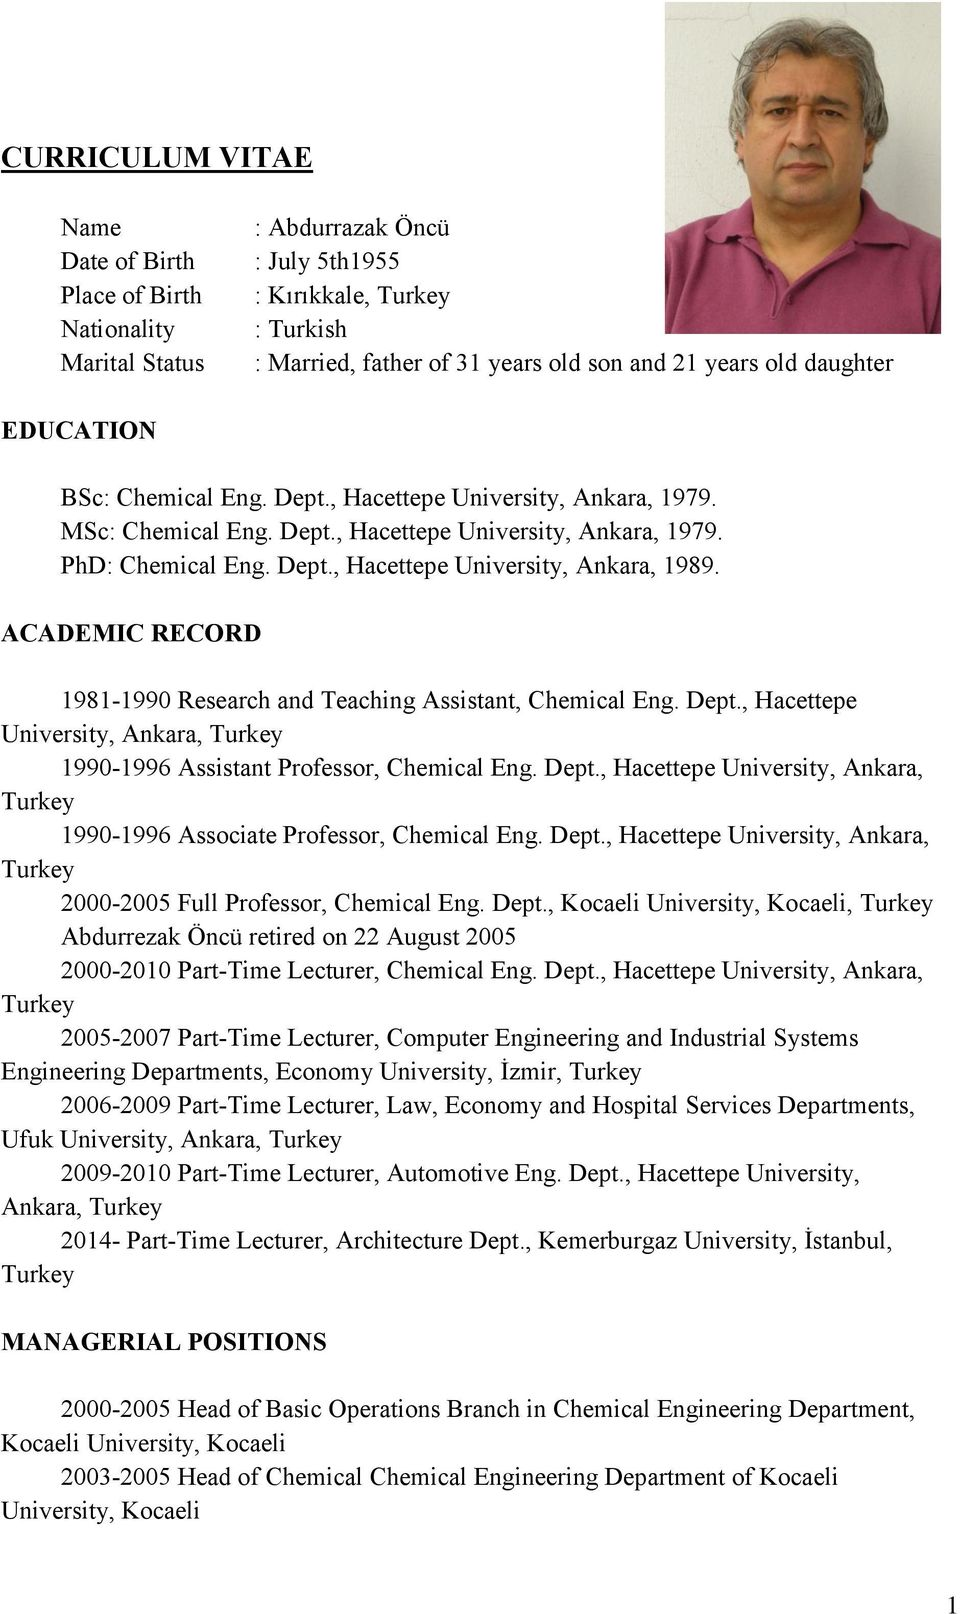 ACADEMIC RECORD 1981-1990 Research and Teaching Assistant, Chemical Eng. Dept., Hacettepe University, Ankara, 1990-1996 Assistant Professor, Chemical Eng. Dept., Hacettepe University, Ankara, 1990-1996 Associate Professor, Chemical Eng.